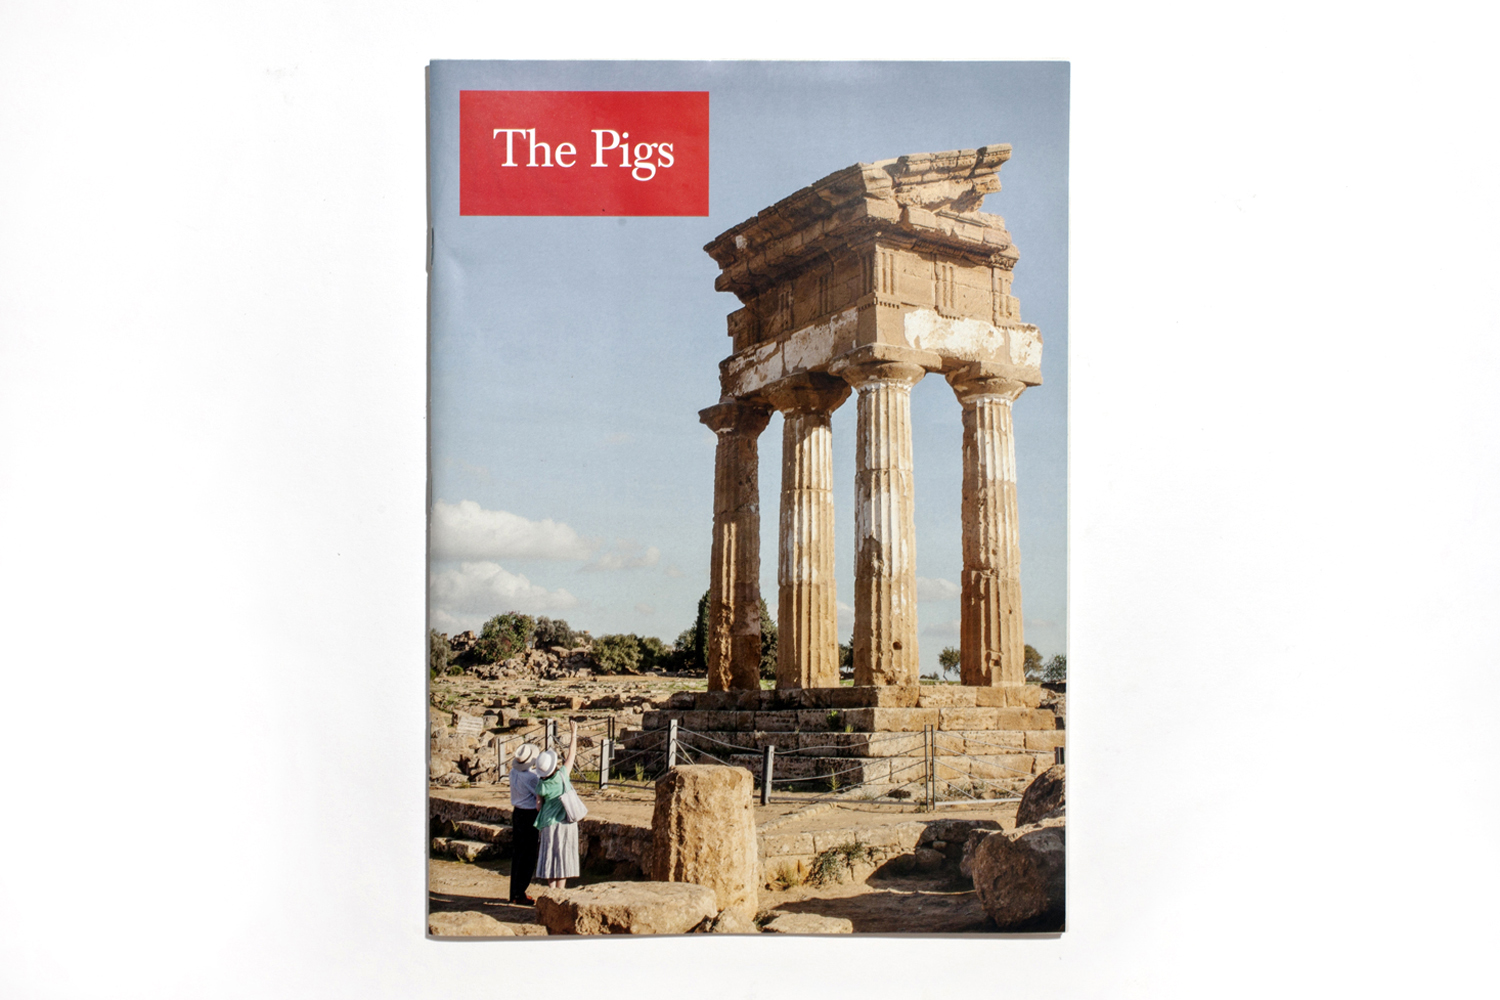 The Pigs by Carlos Spottorno, published by RM Verlag & Phree, selected by Olivier Laurent, deputy editor, British Journal of Photography.